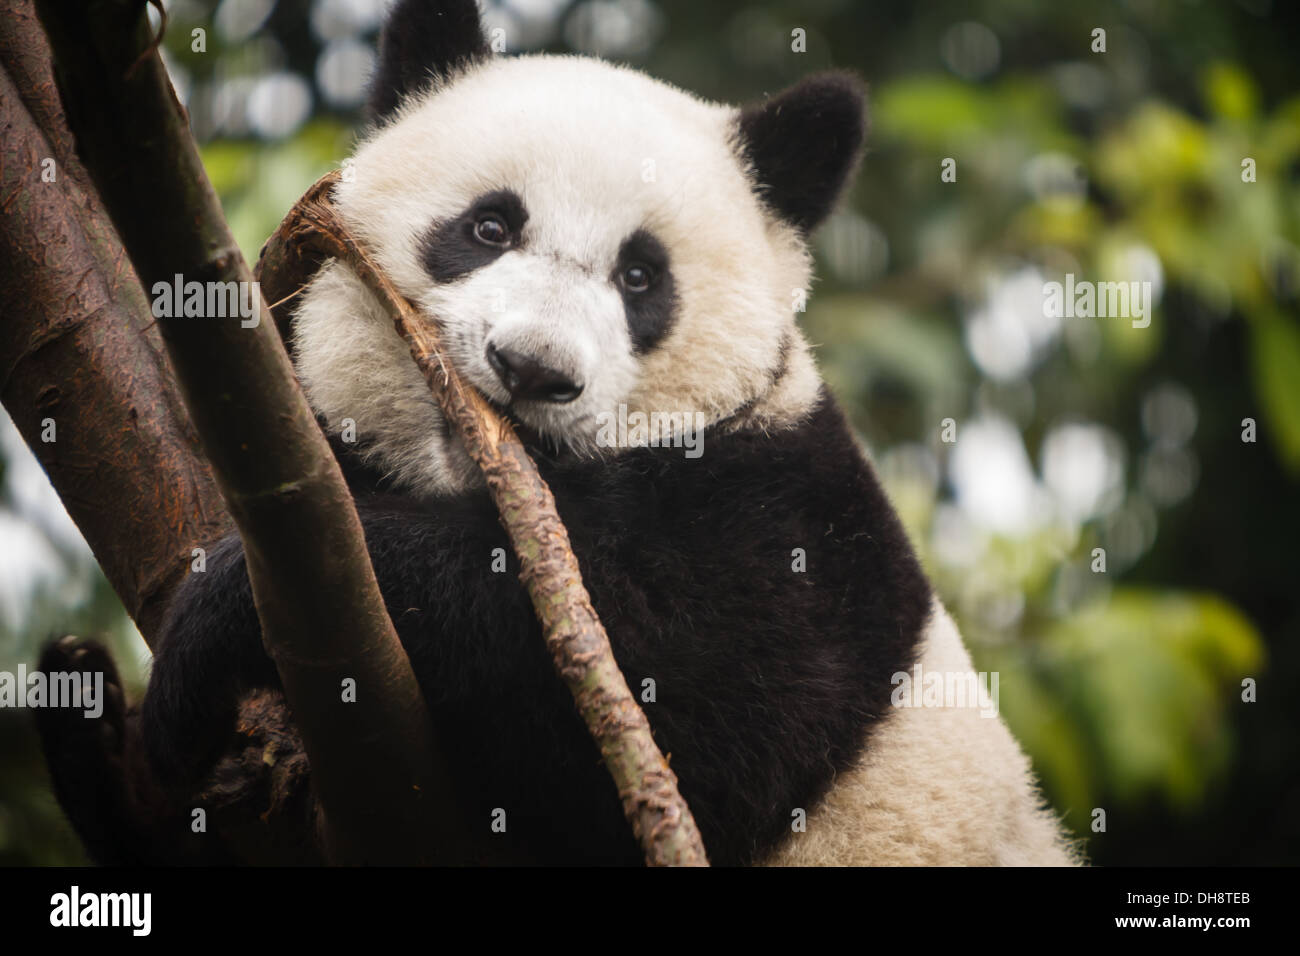 Panda bear chewing on a branch and climbing a tree at Chengdu Giant Panda Breeding Center in Sichuan China - Stock Image